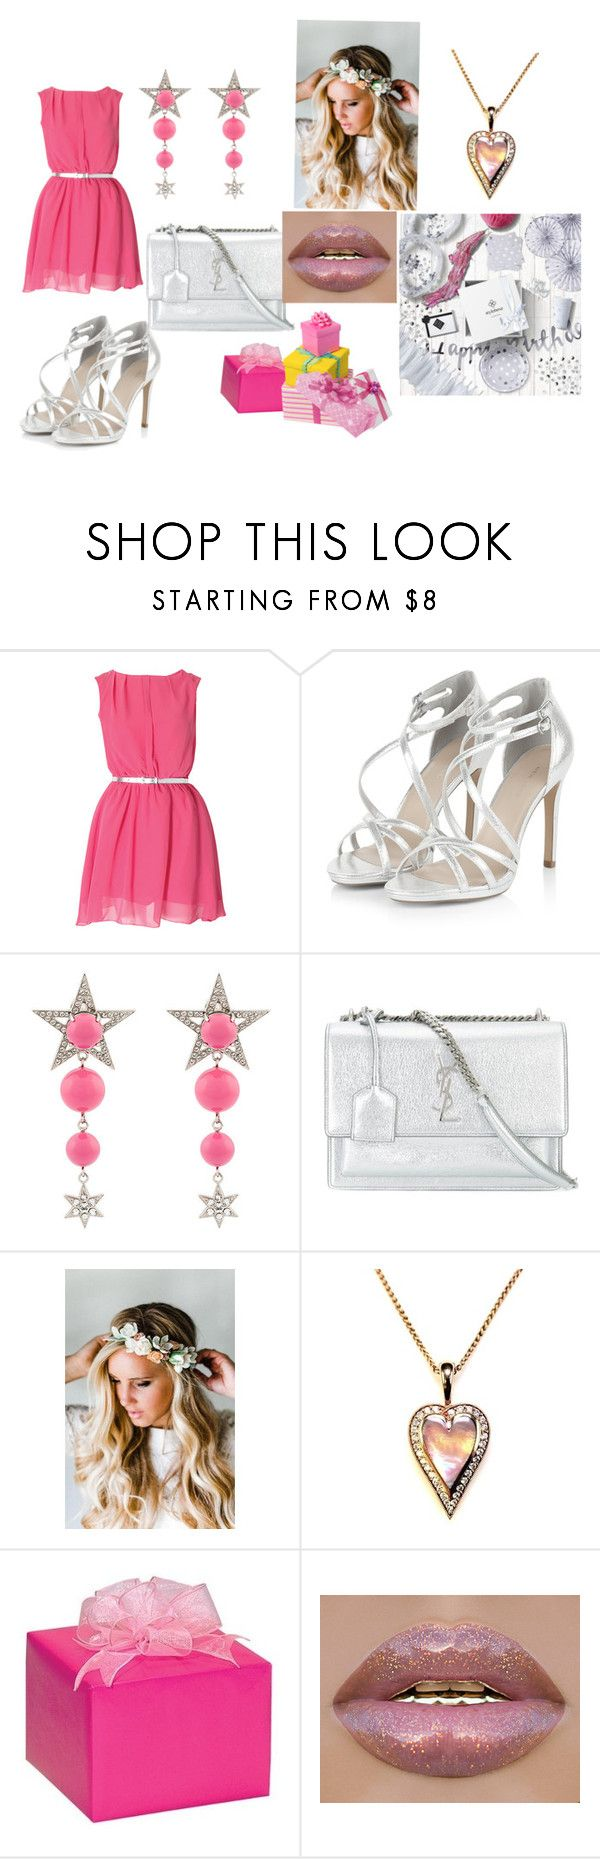 """Happy Sweet 15"" by kedaboo ❤ liked on Polyvore featuring Miu Miu, Yves Saint Laurent and Emily Rose Flower Crowns"